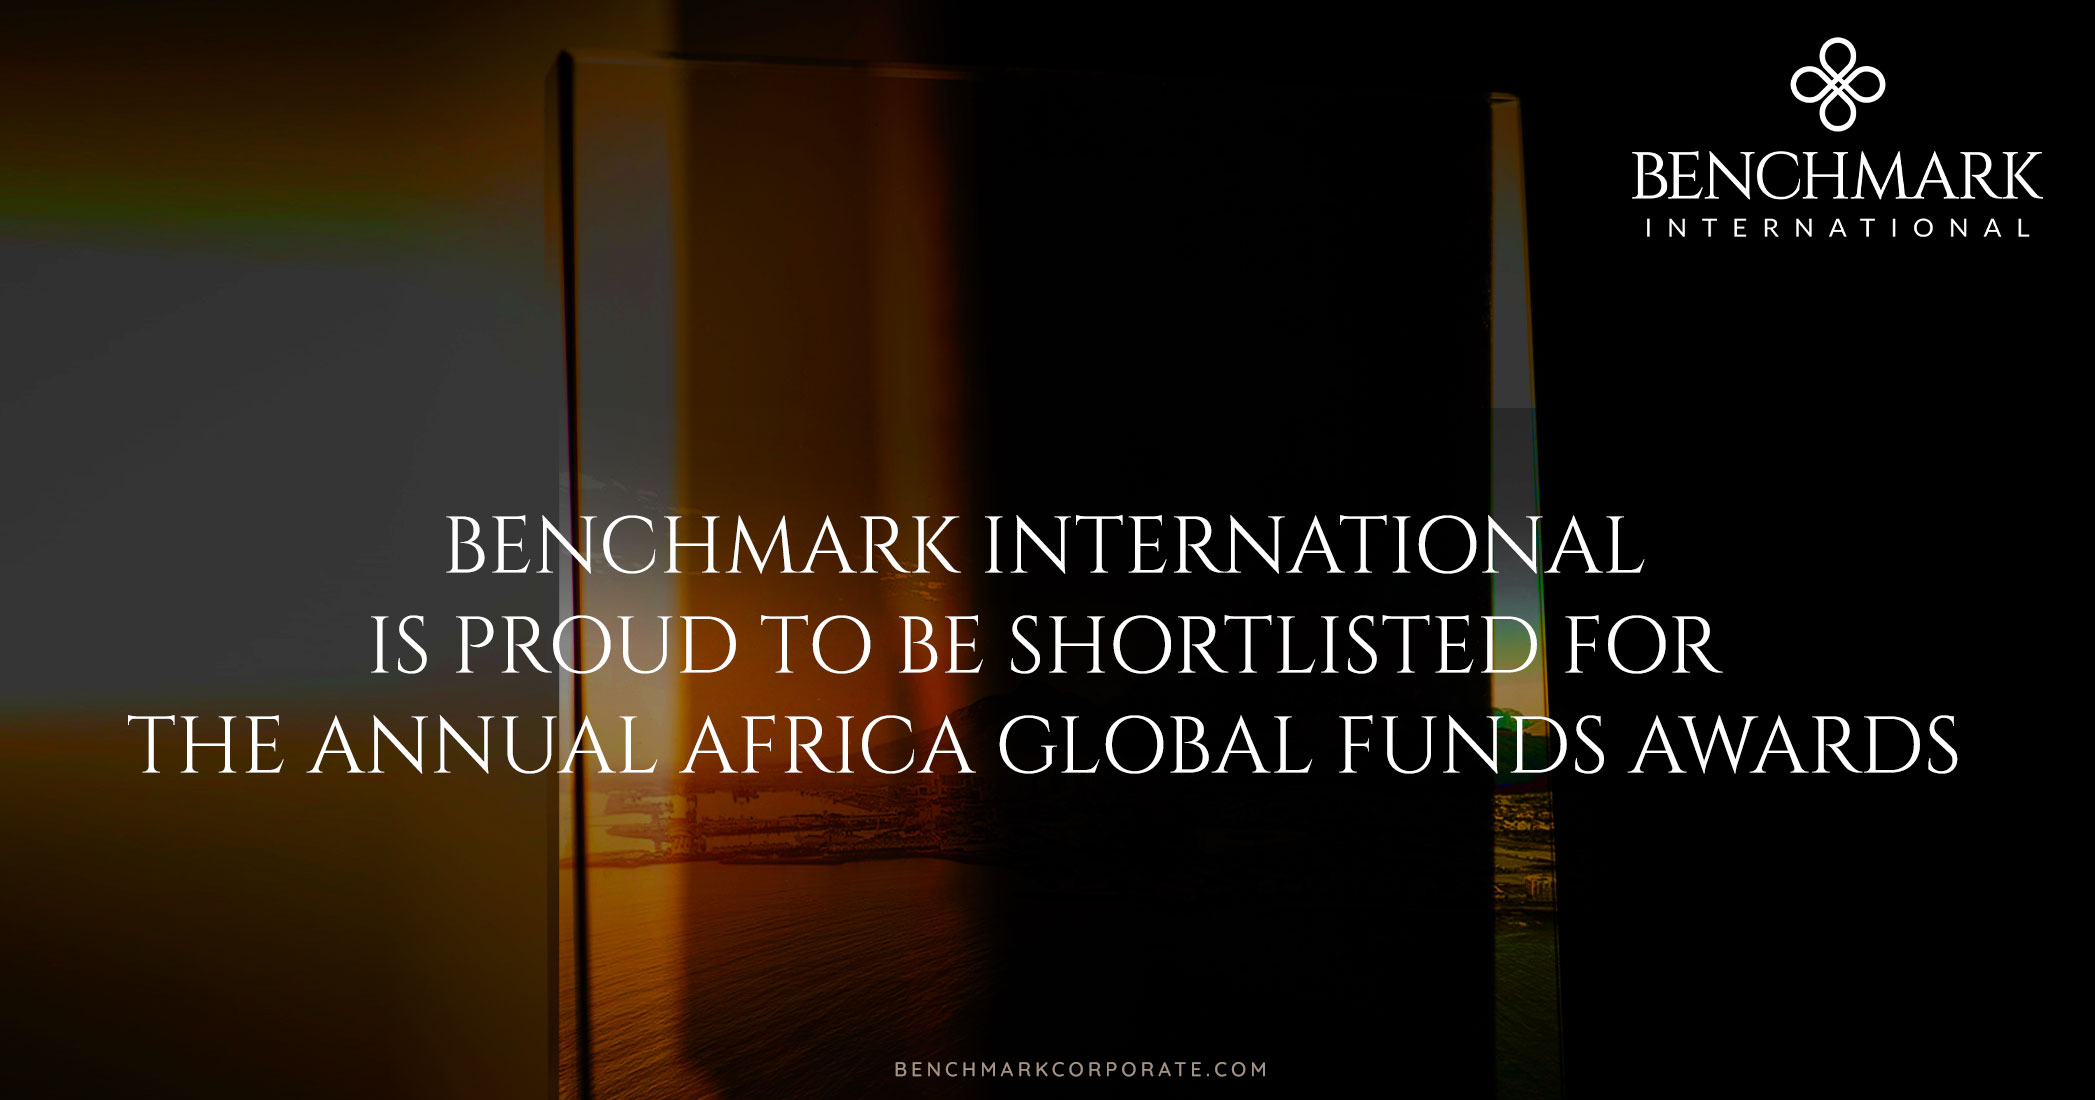 Benchmark International (South Africa) is proud to be shortlisted for the annual Africa Global Funds Awards